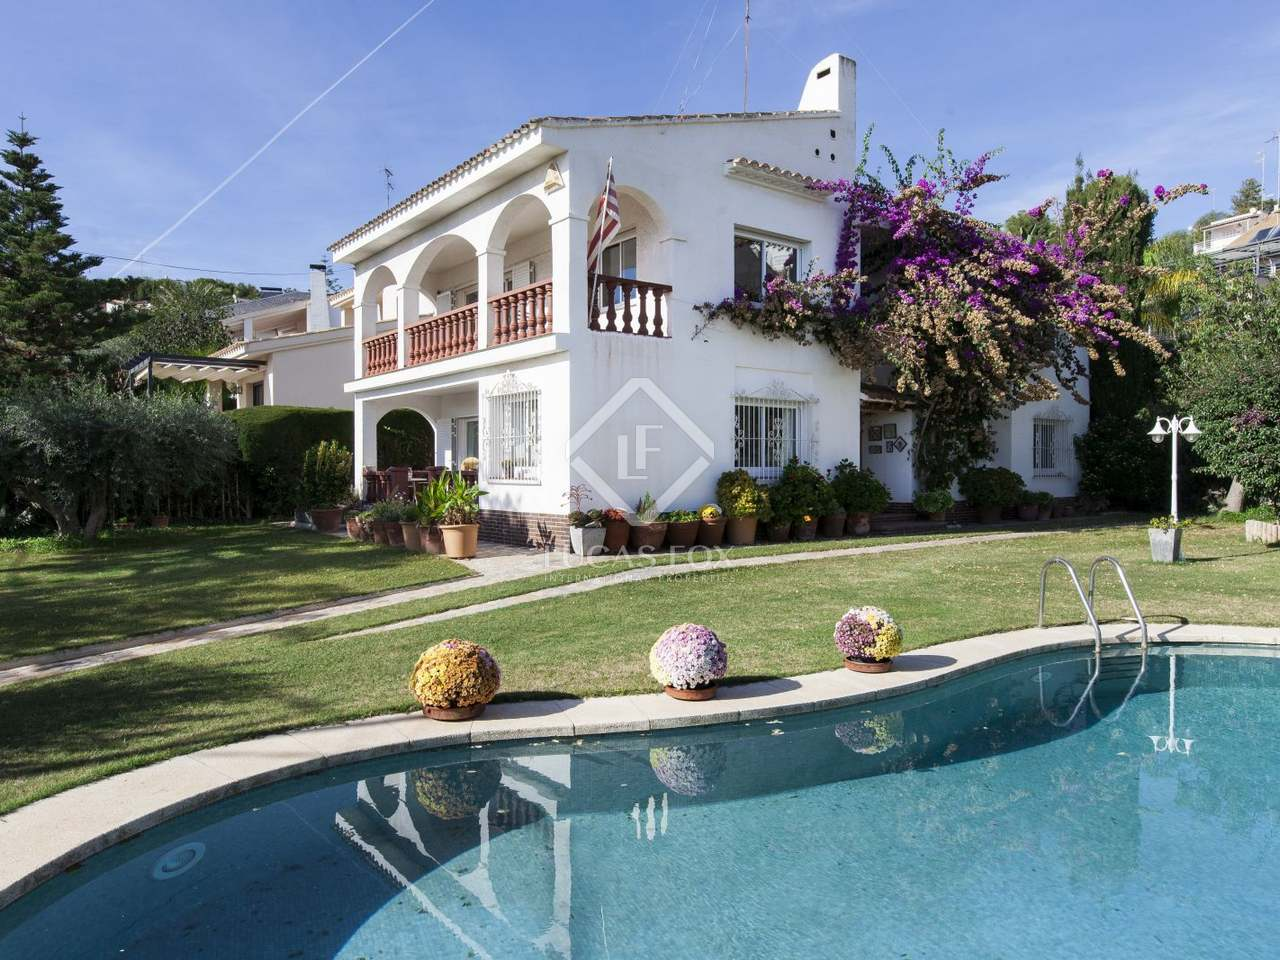 4 Bedroom House With Garden And Pool For Sale In Vallpineda